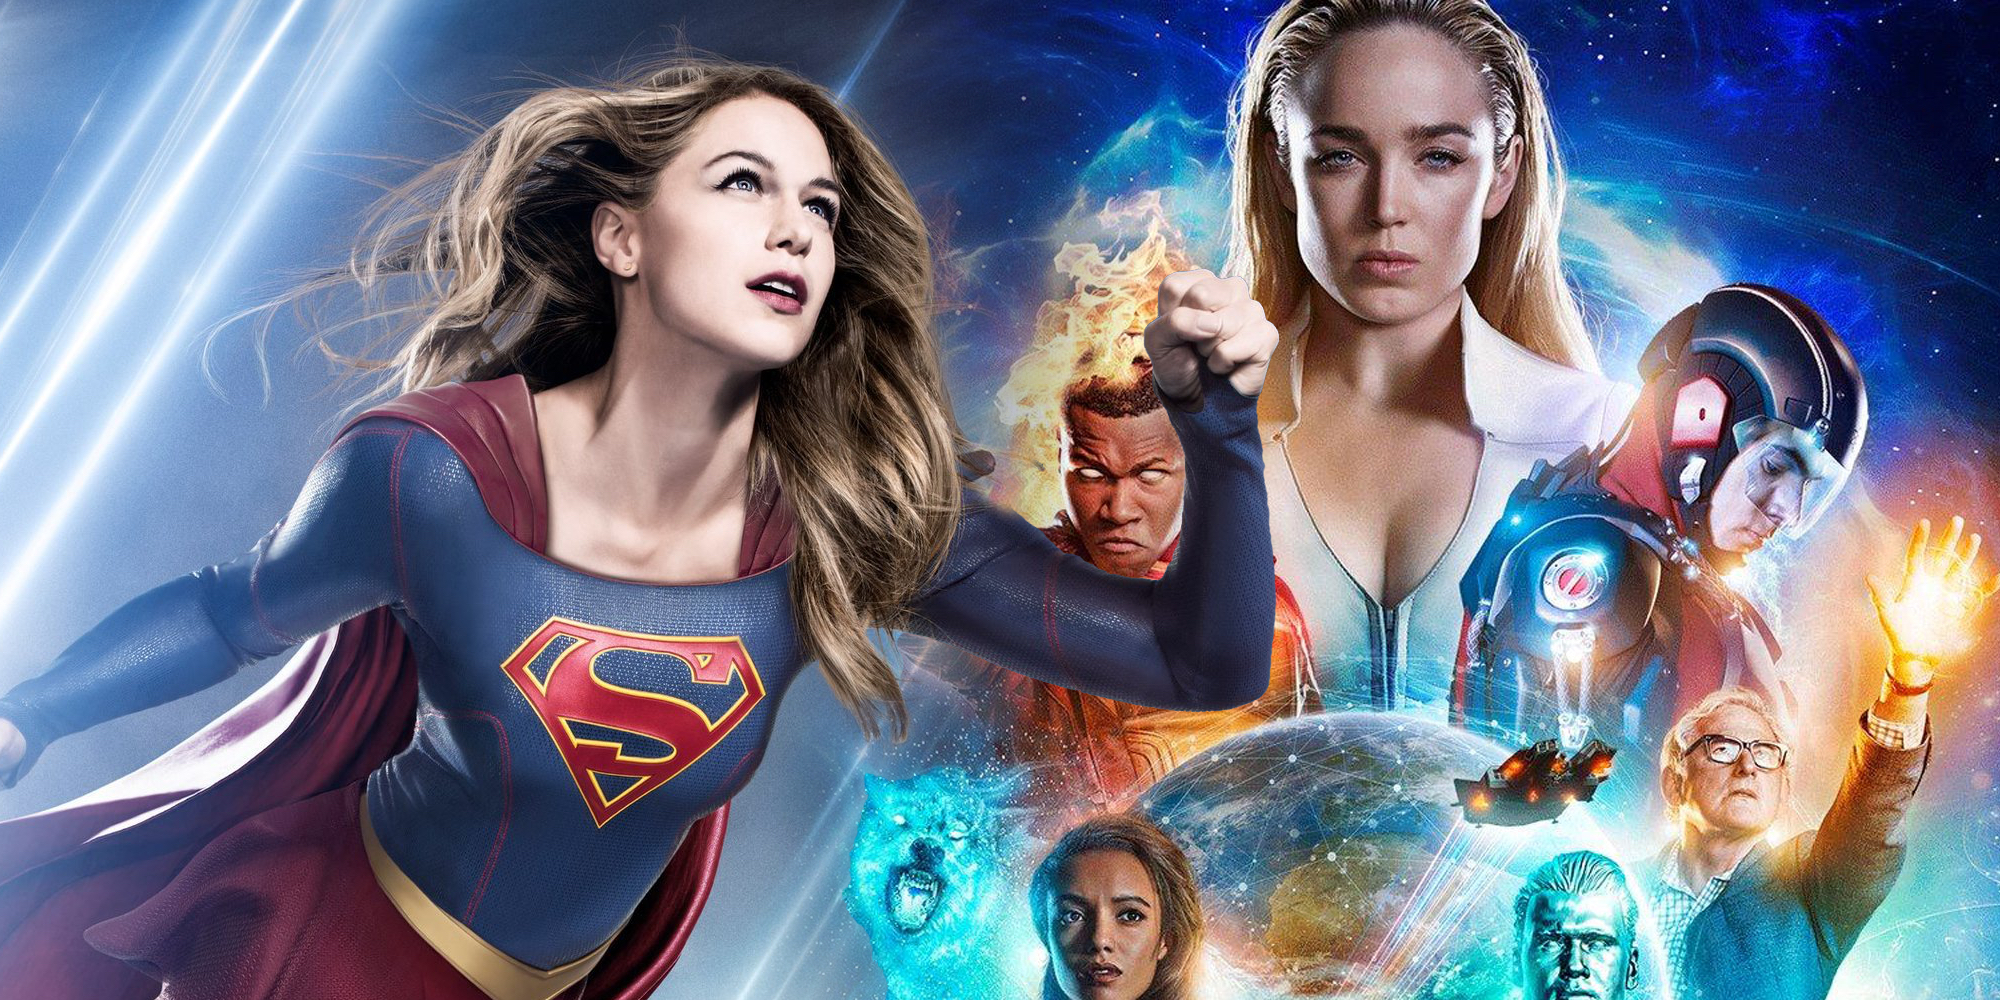 Supergirl Legends of Tomorrow The CW